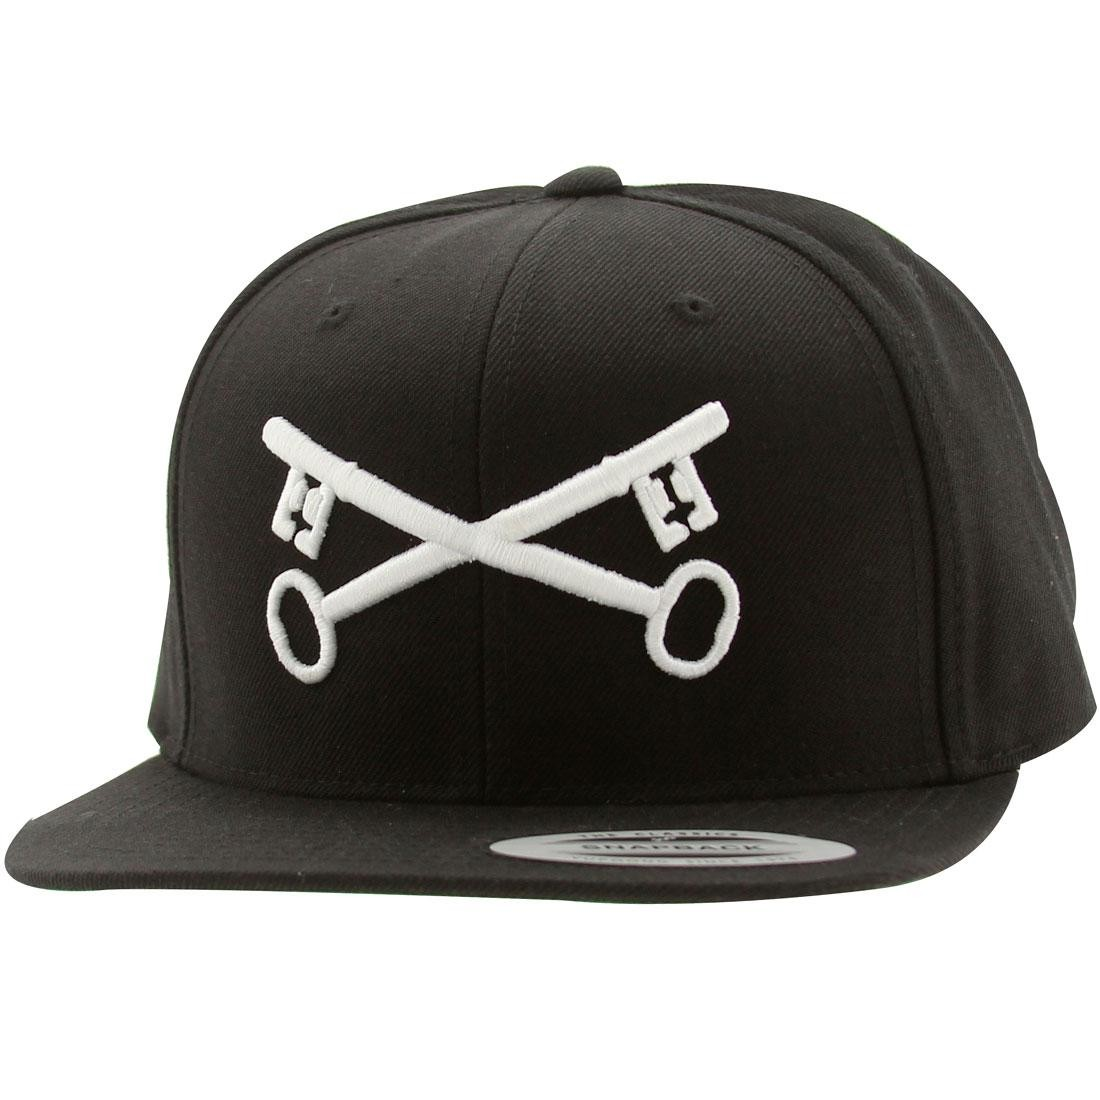 Bloodbath Keys Snapback Cap (black / white)